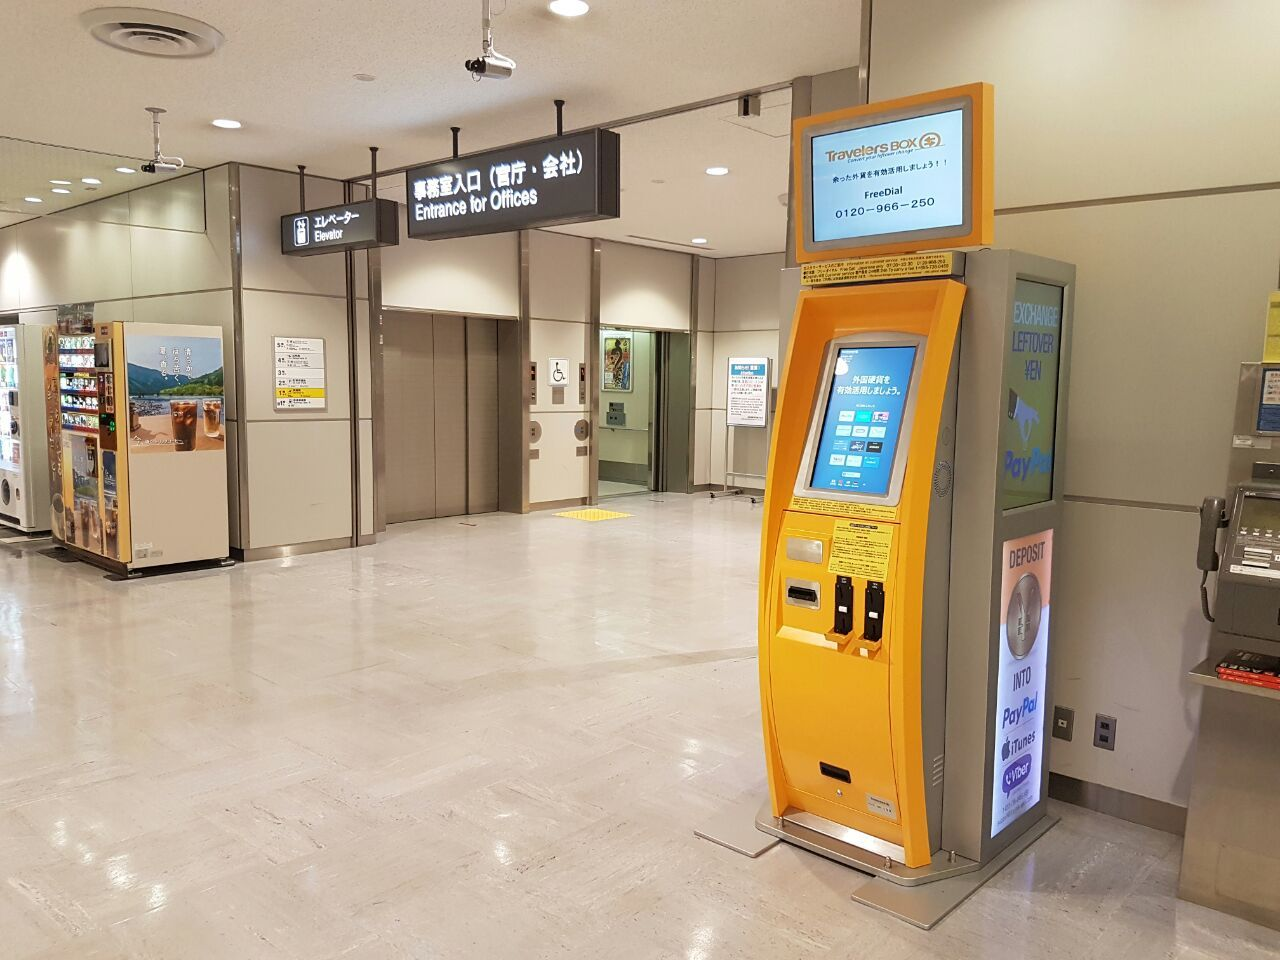 TravelersBox for converting leftover foreign currency